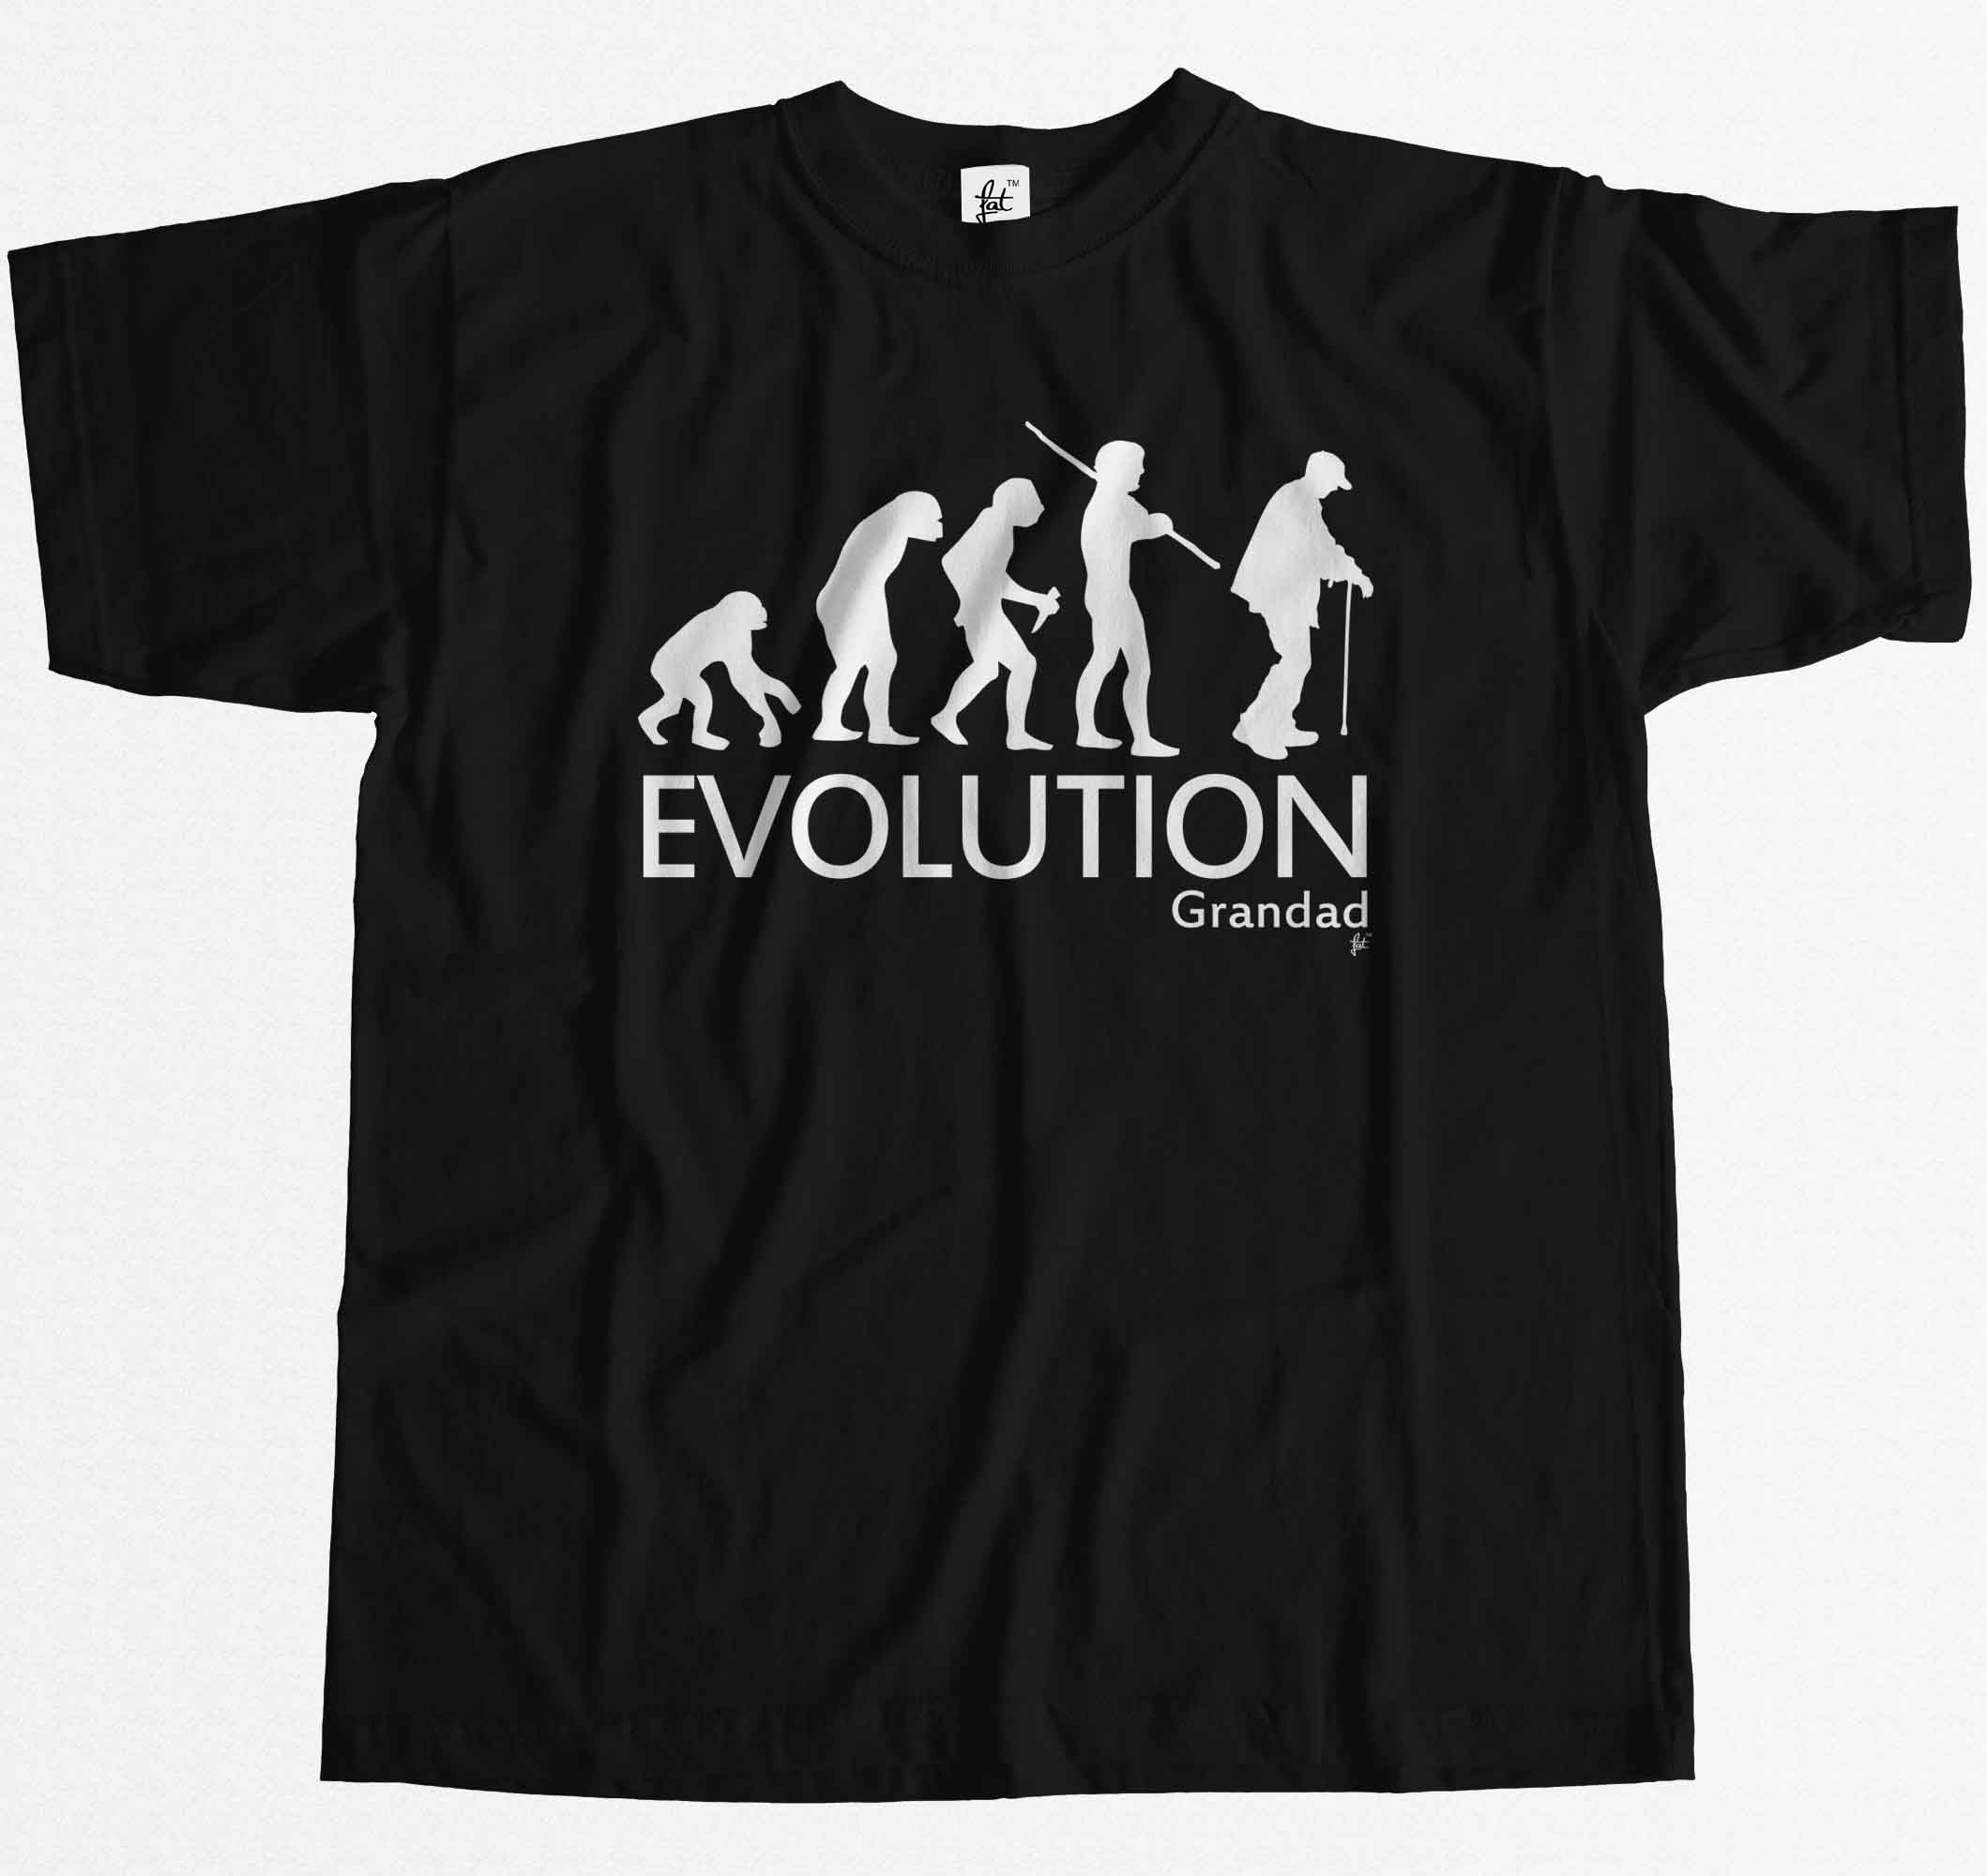 Evolution Grandad Funny Fathers Day Birthday Christmas Mens T-Shirt Summer Casual Man T Shirt Good Quality Top Tee